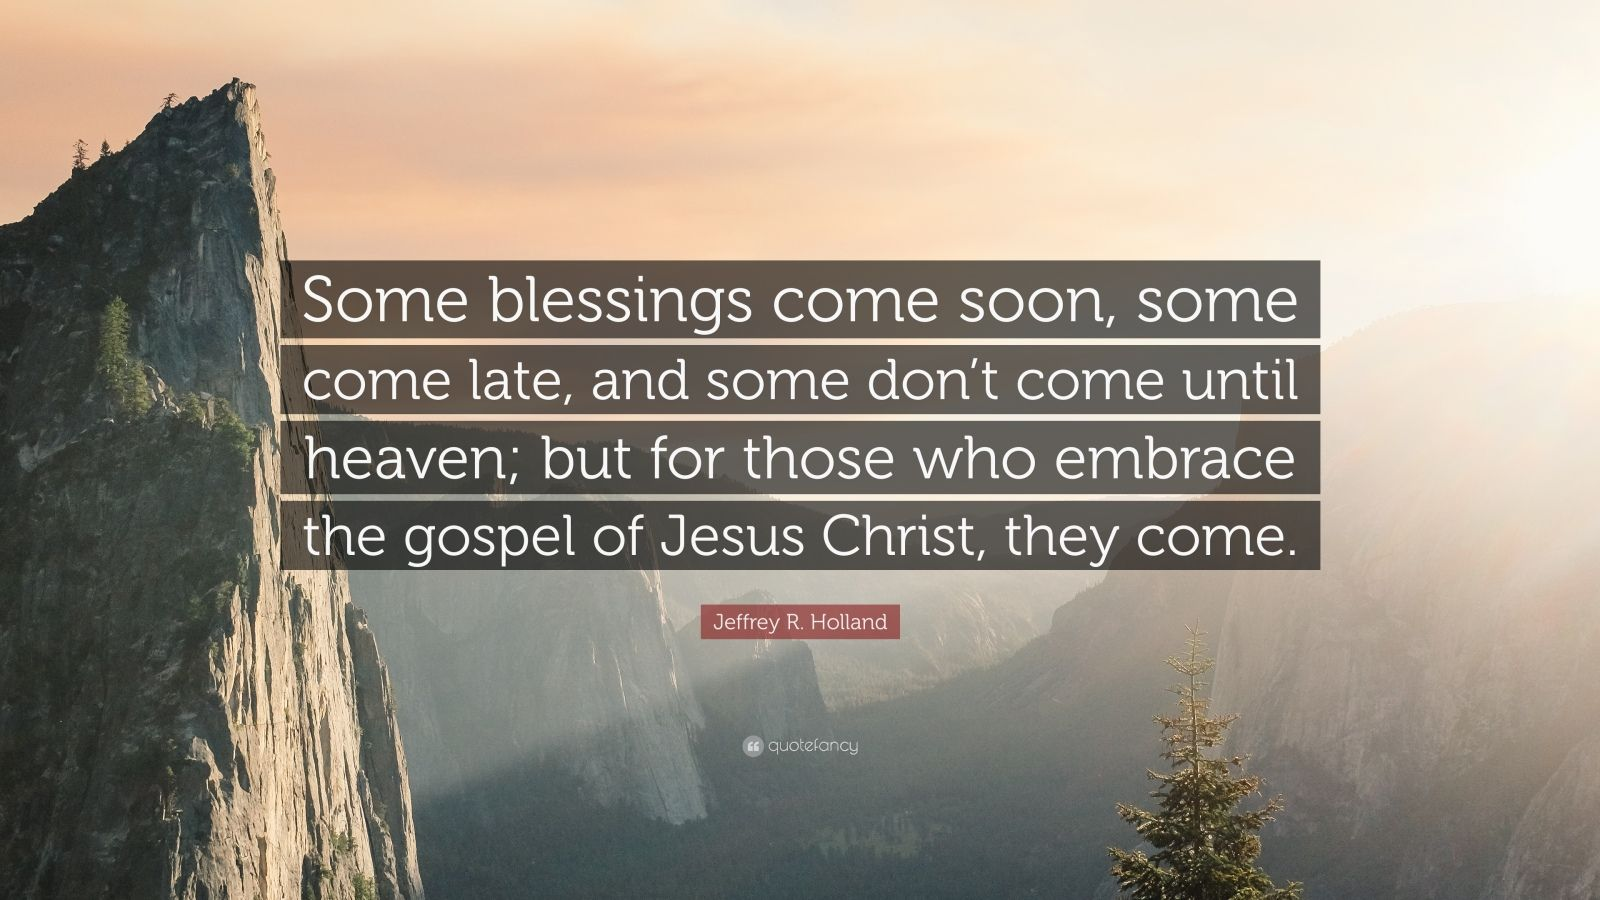 """Jeffrey R. Holland Quote: """"Some blessings come soon, some come late, and some don't come until heaven; but for those who embrace the gospel of Jesus Christ, they come."""""""